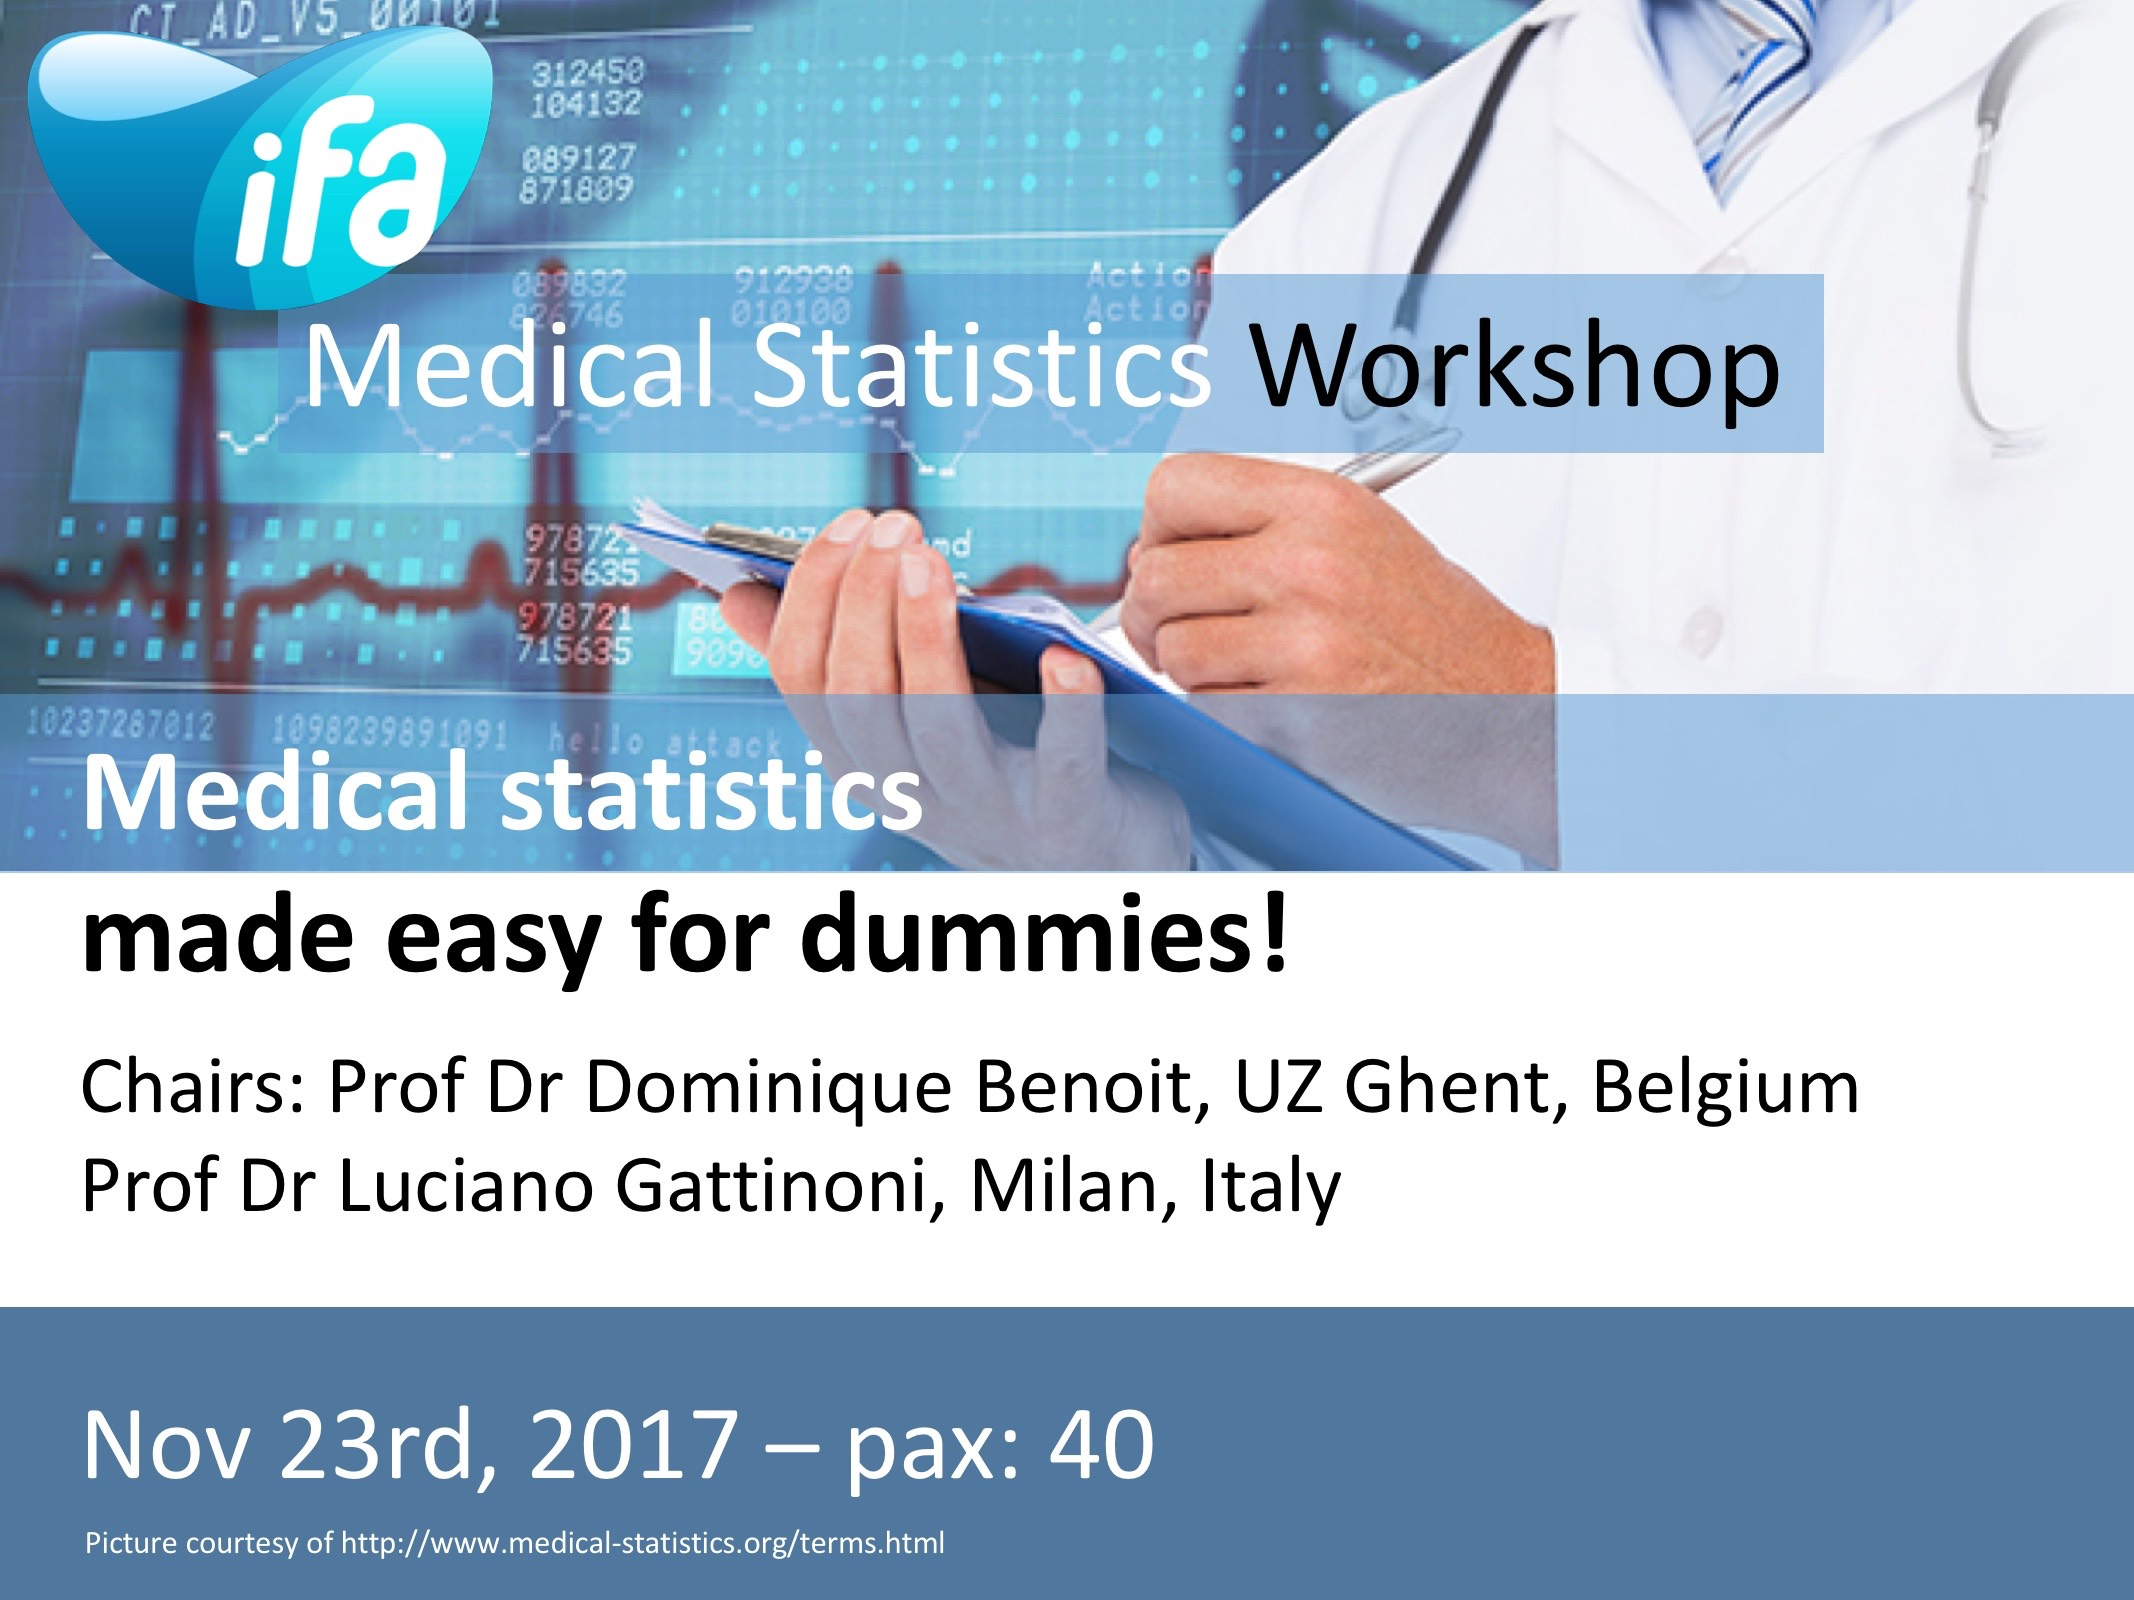 Workshop on Medical Statistics